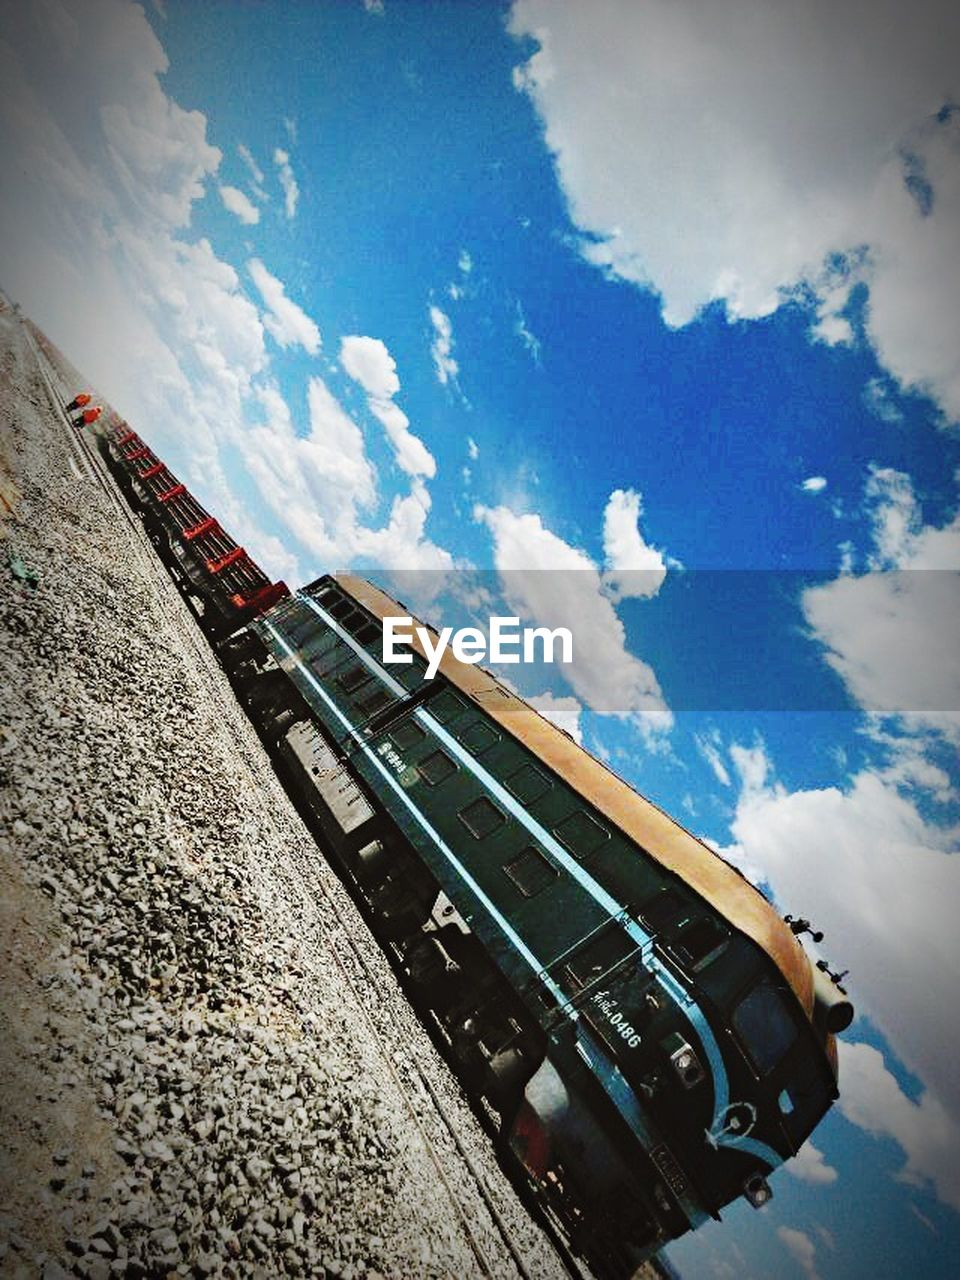 sky, cloud - sky, transportation, rail transportation, day, low angle view, outdoors, no people